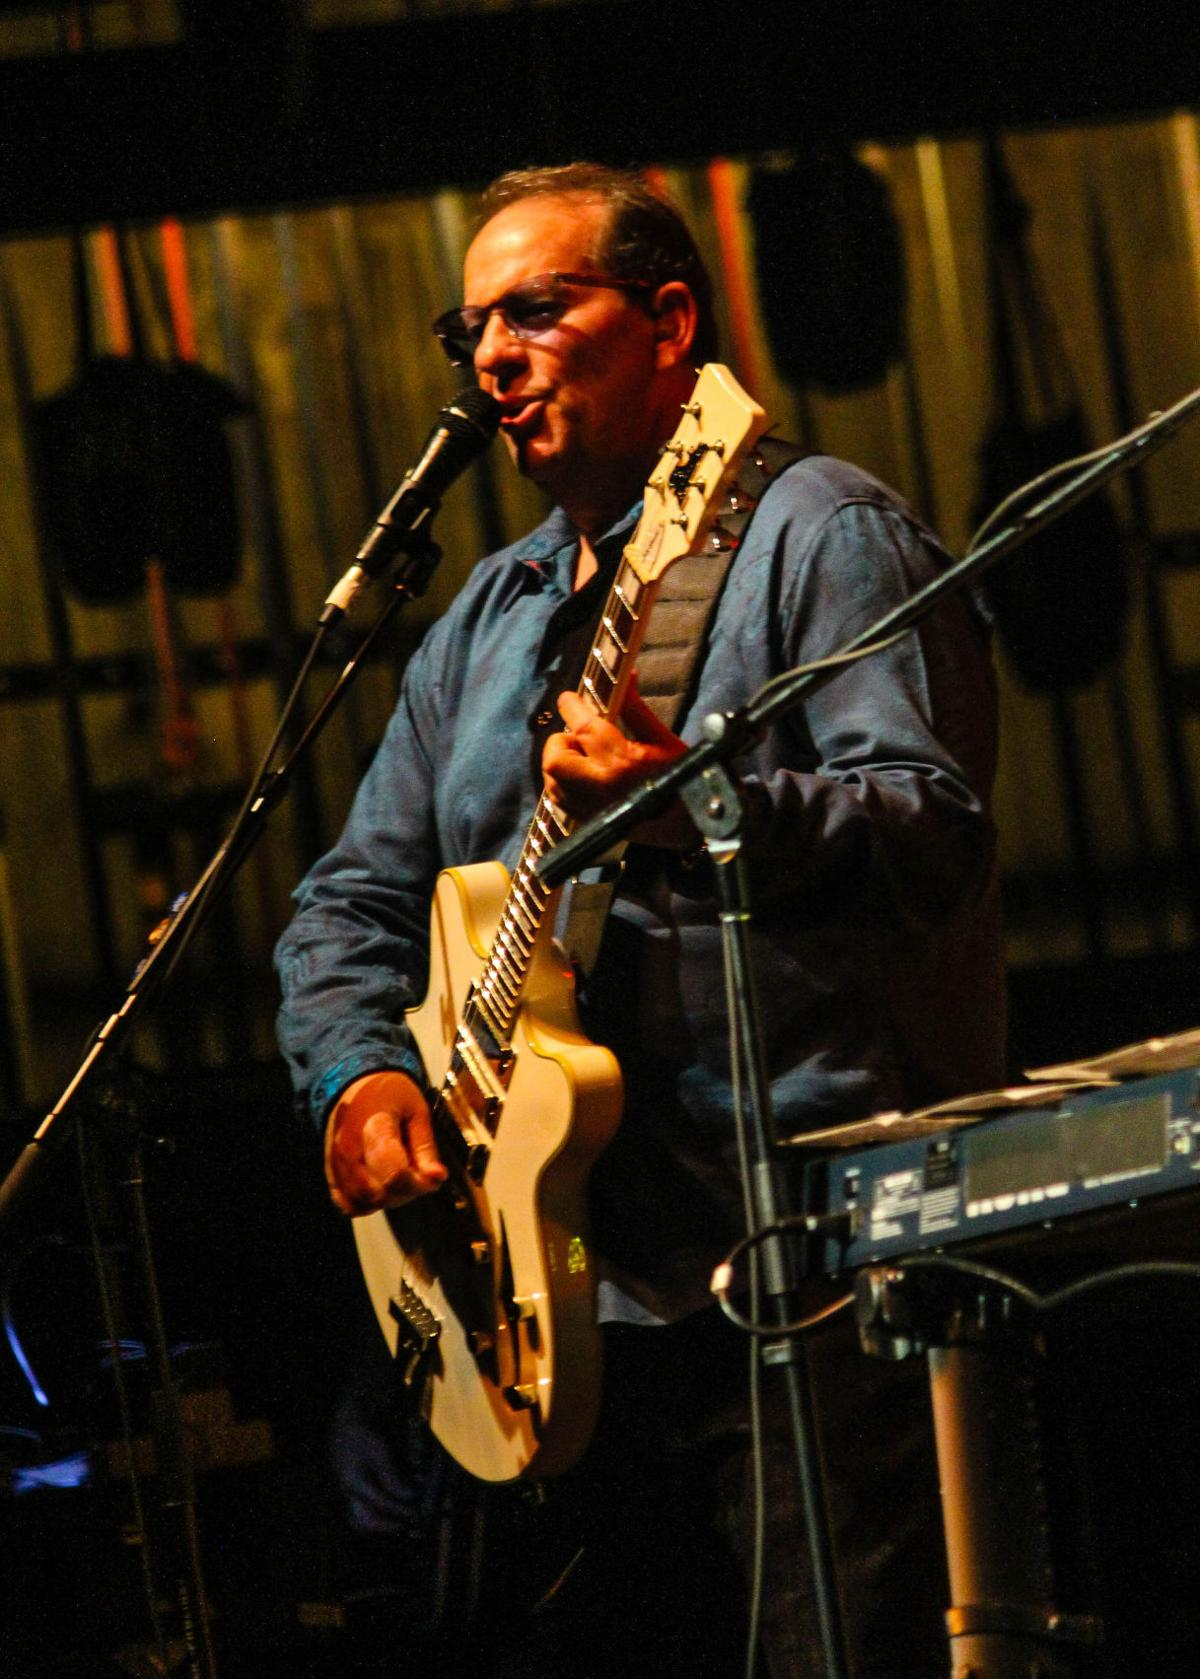 Jeffrey Foskett plays the rhythm guitar with the Beach Boys who performed at the Lied Center on April 19 in front of a full house